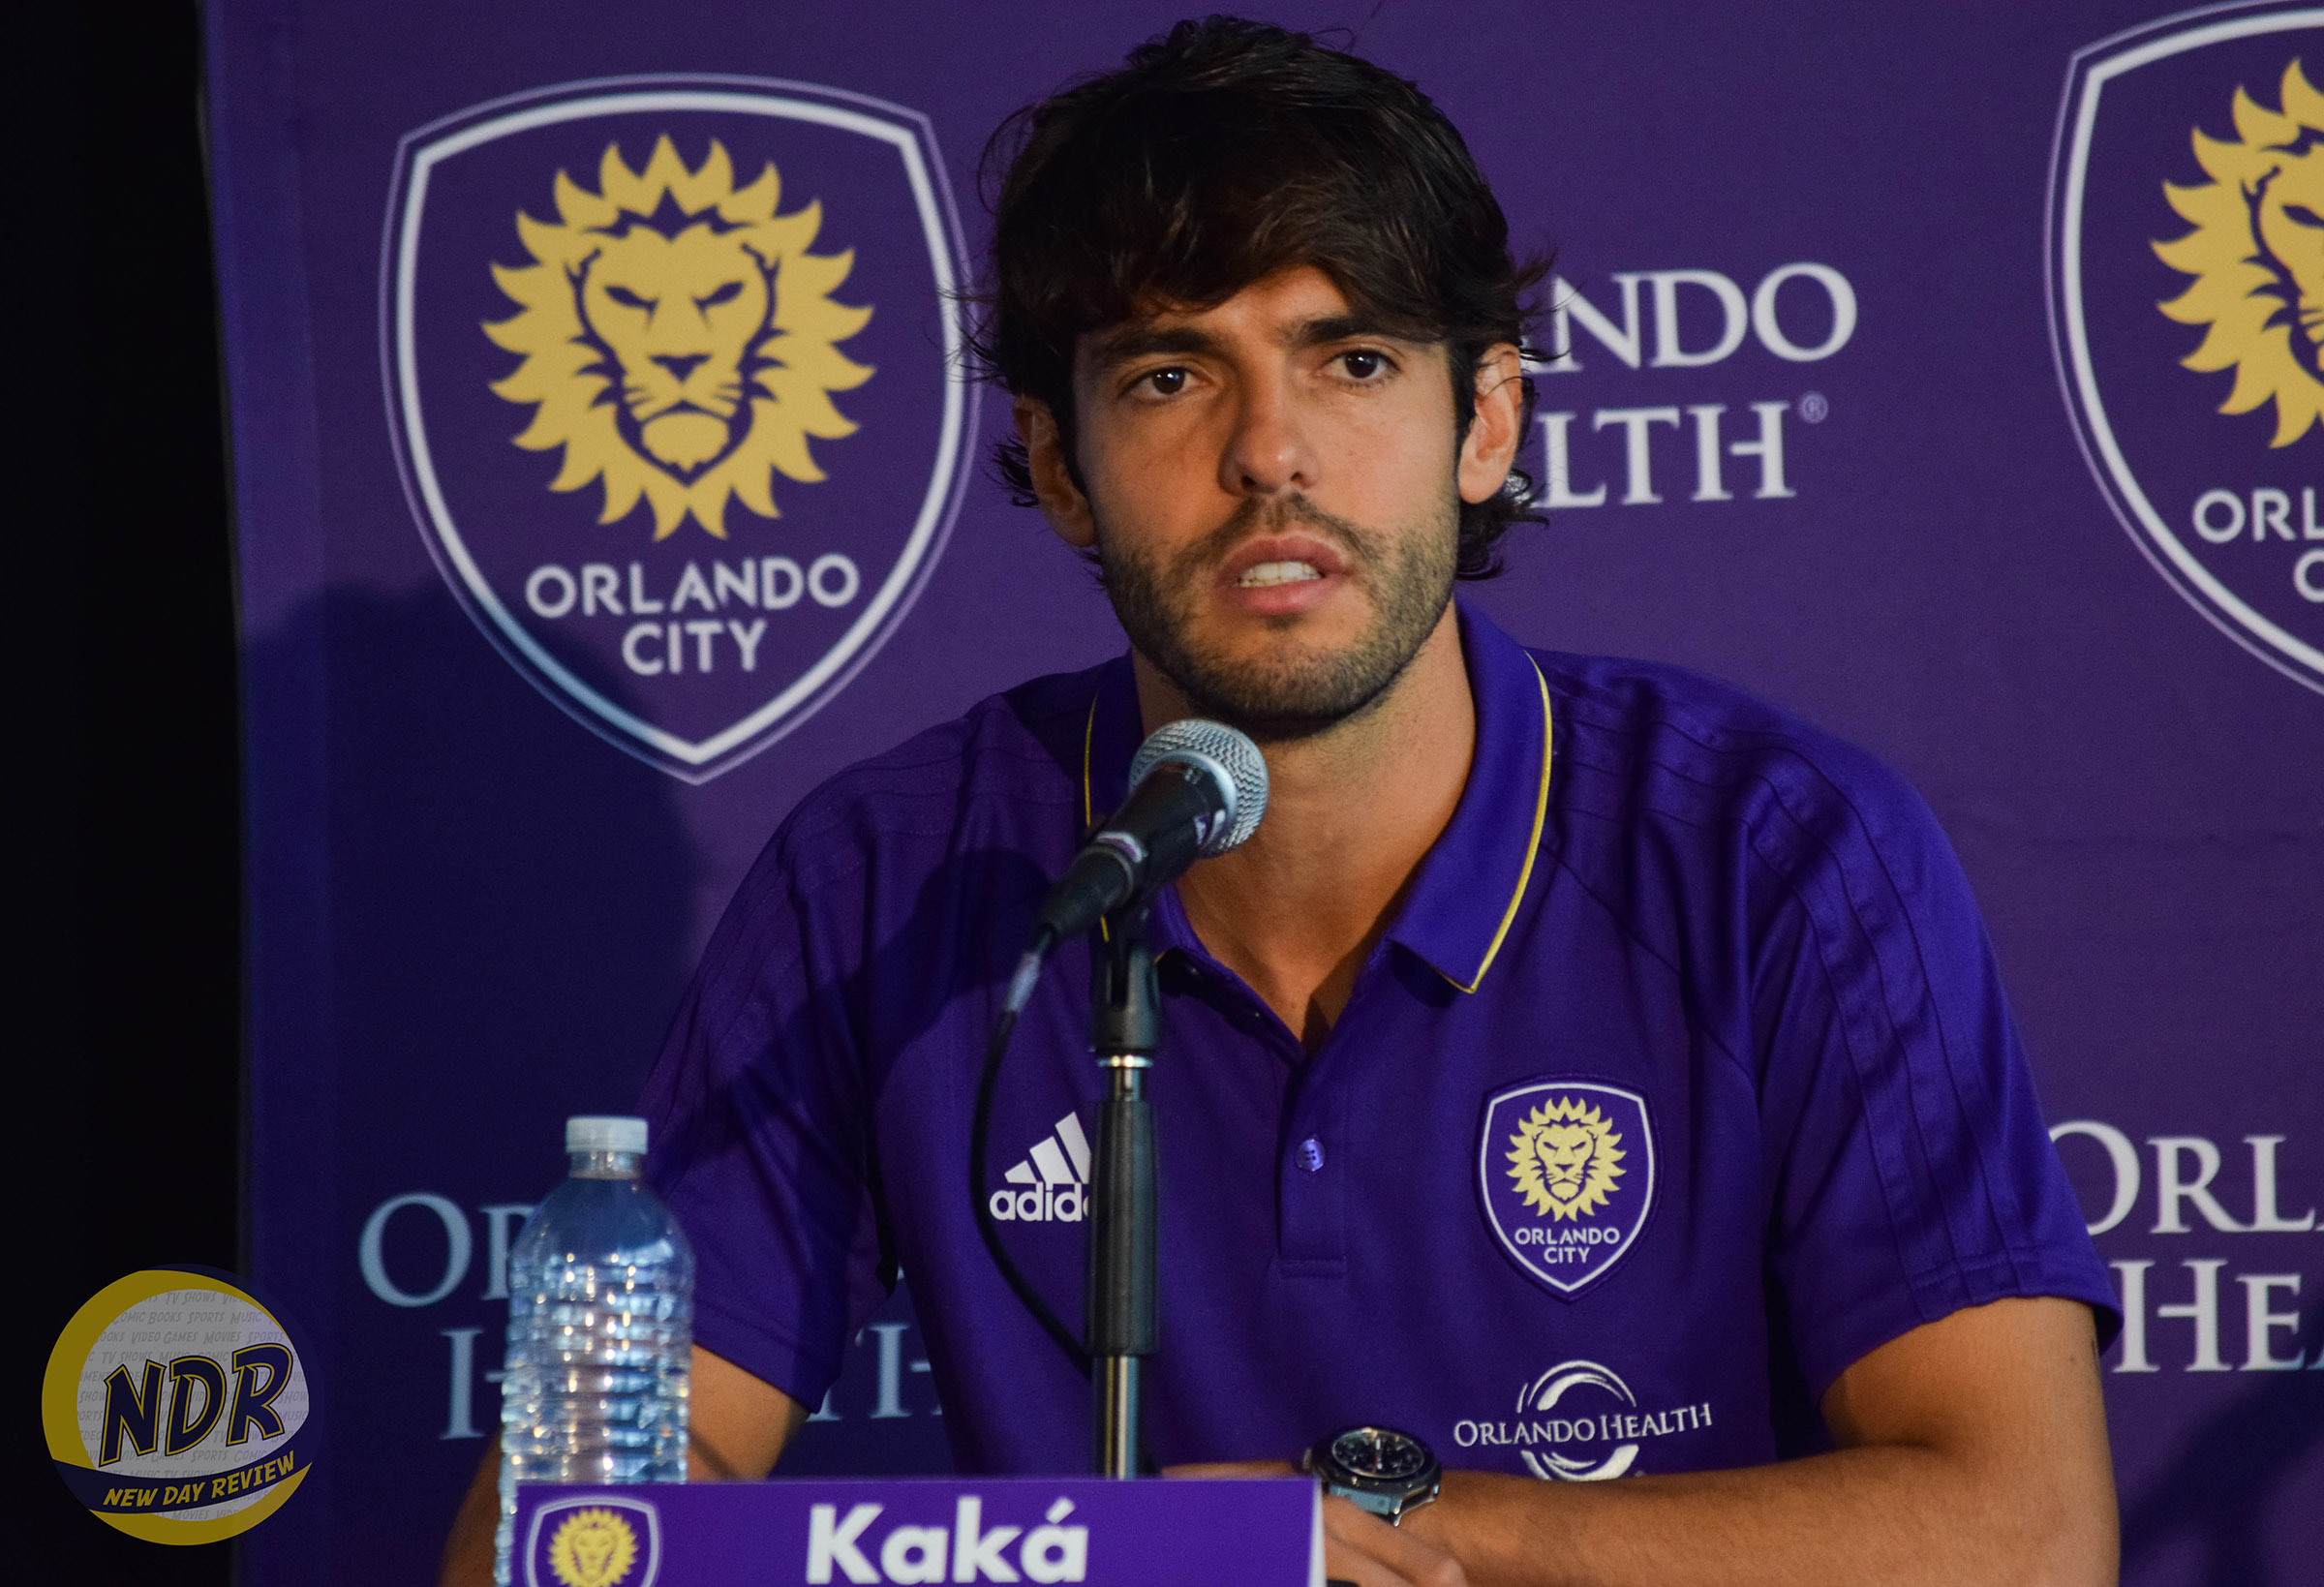 Ricardo Kaká Out for 6 Weeks with Pulled Hamstring — New Day Review